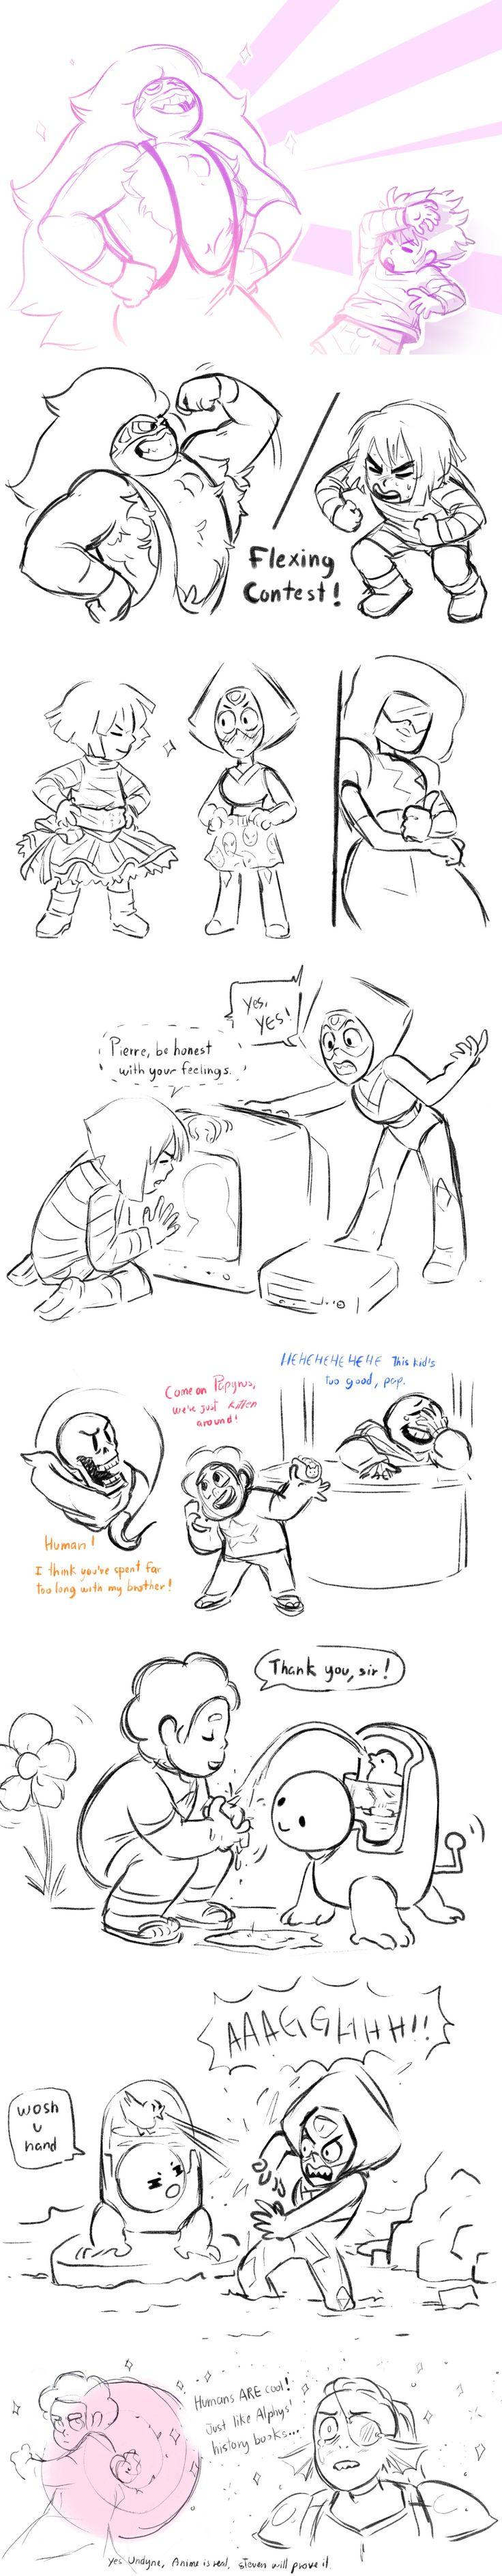 Undertale and Steven Universe crossover